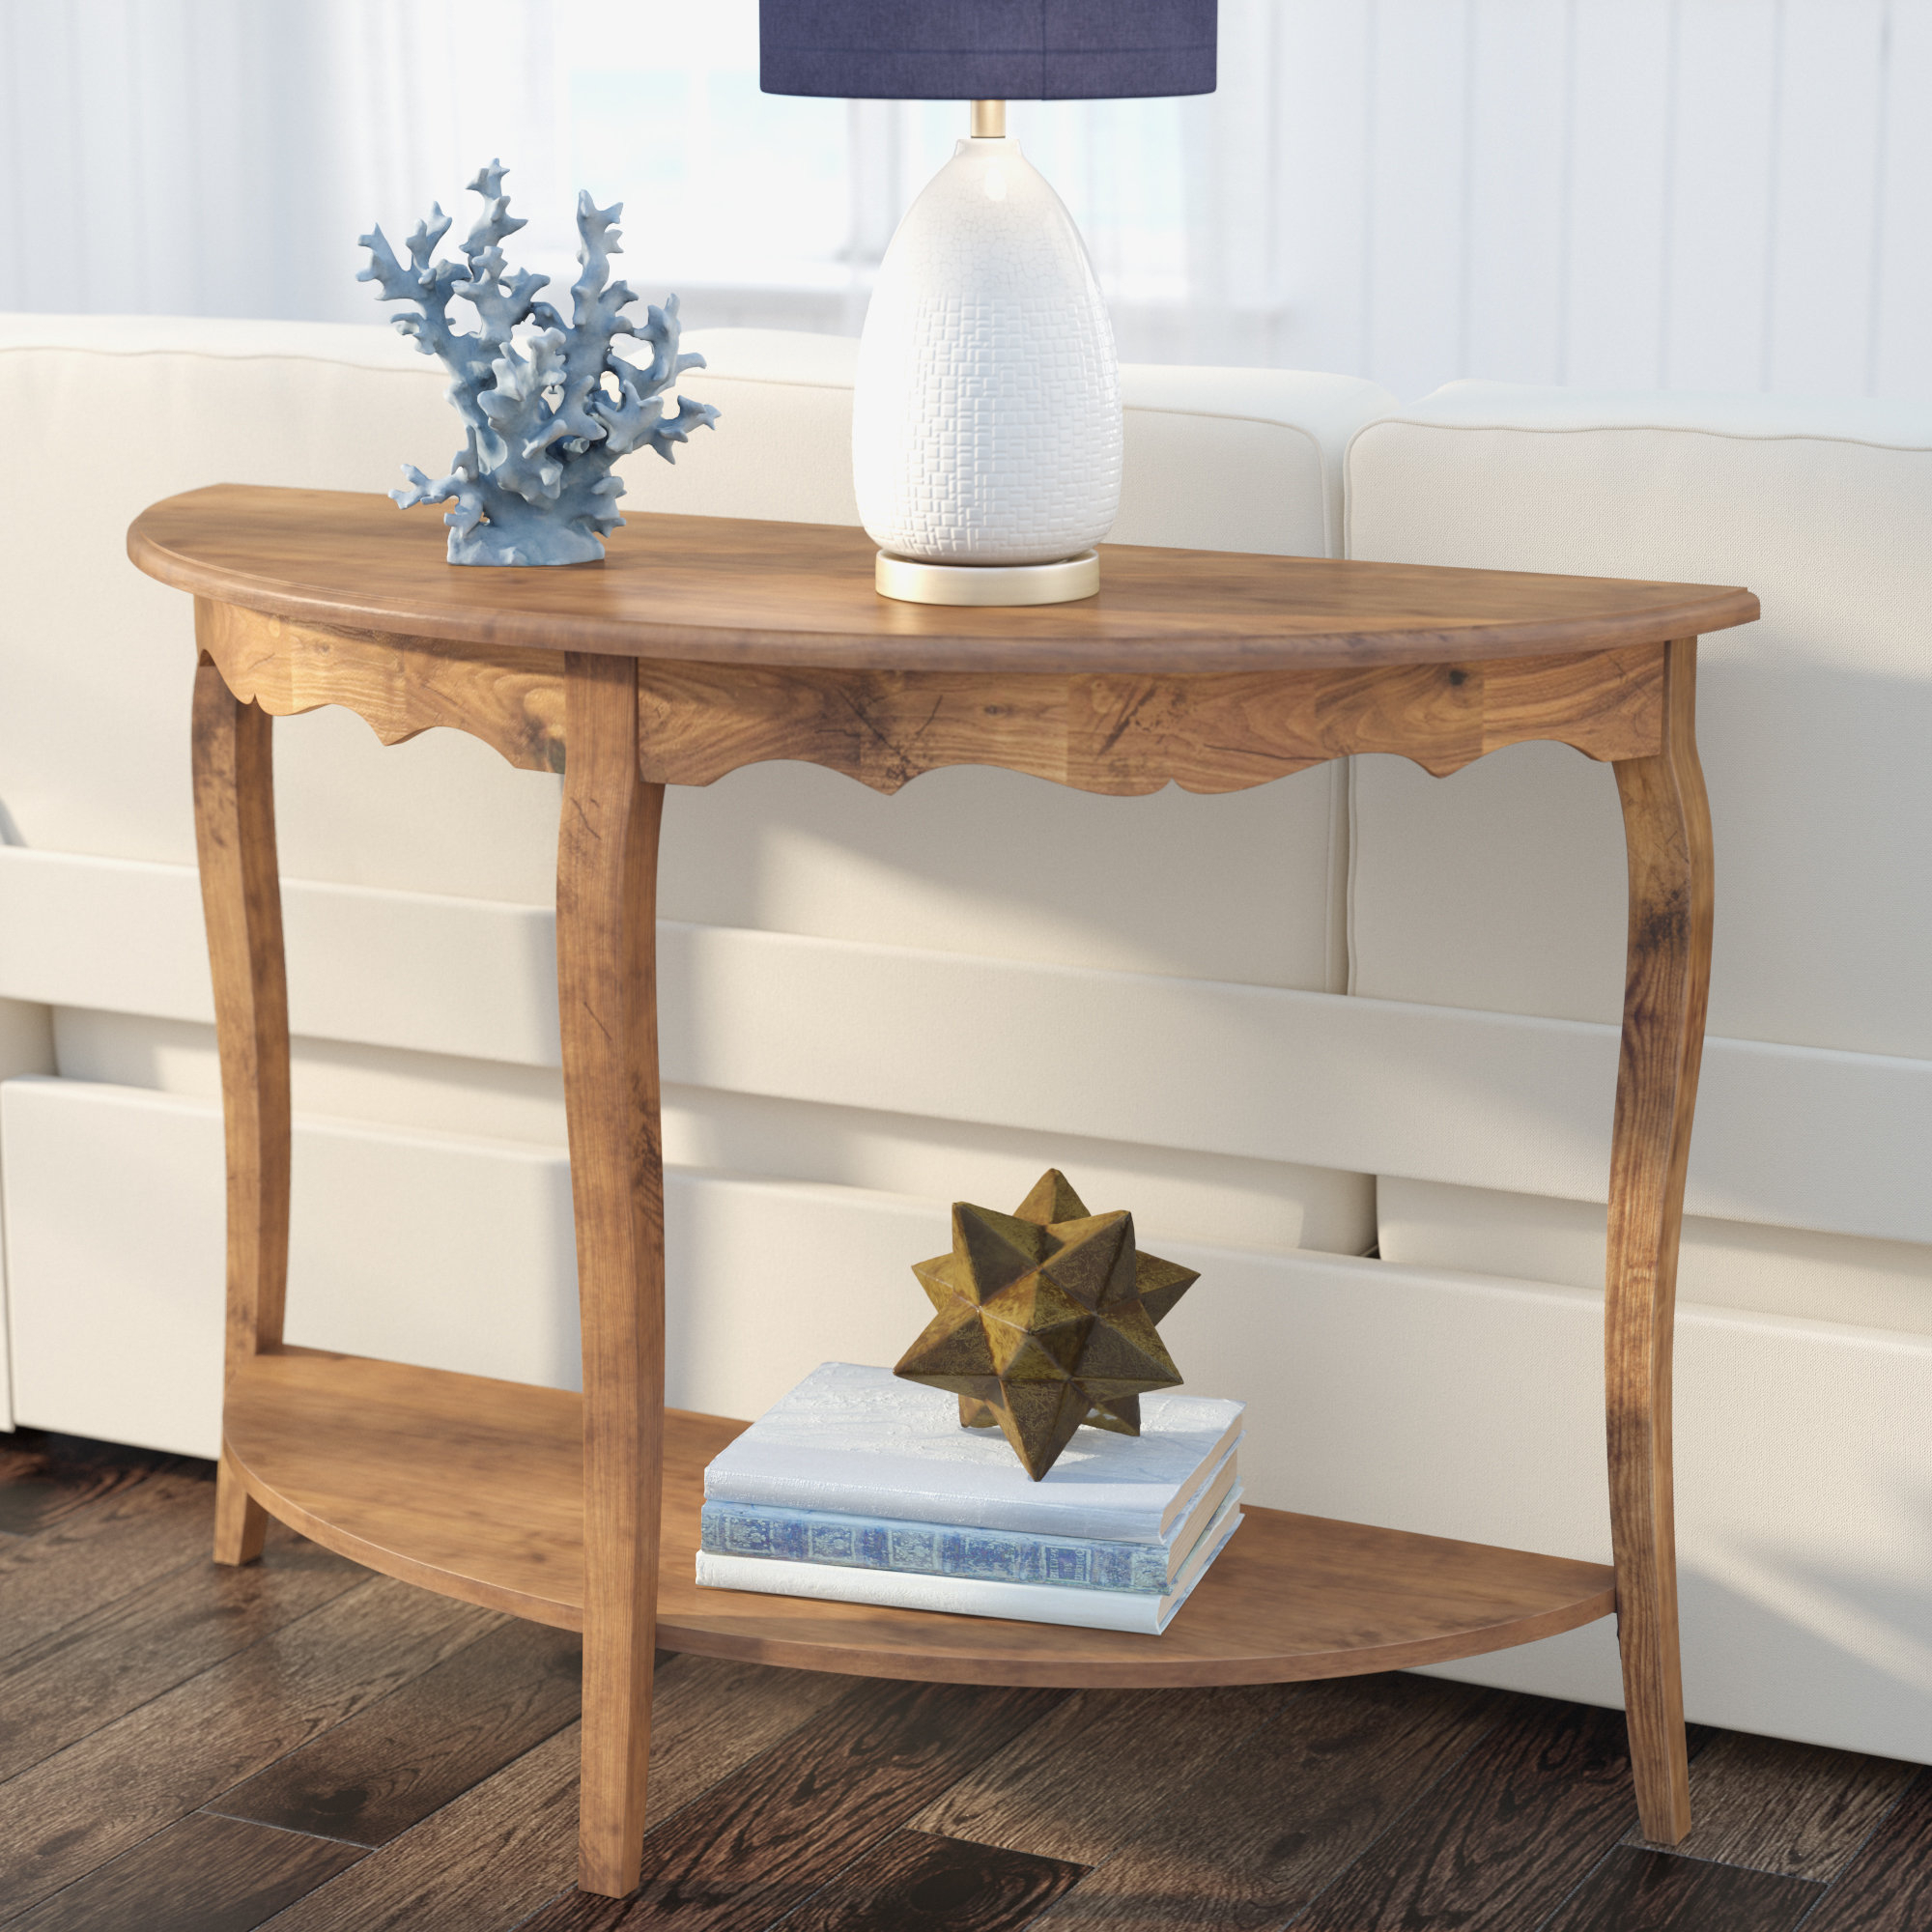 Half Circle Console Tables You'll Love | Wayfair Inside Layered Wood Small Square Console Tables (View 4 of 30)